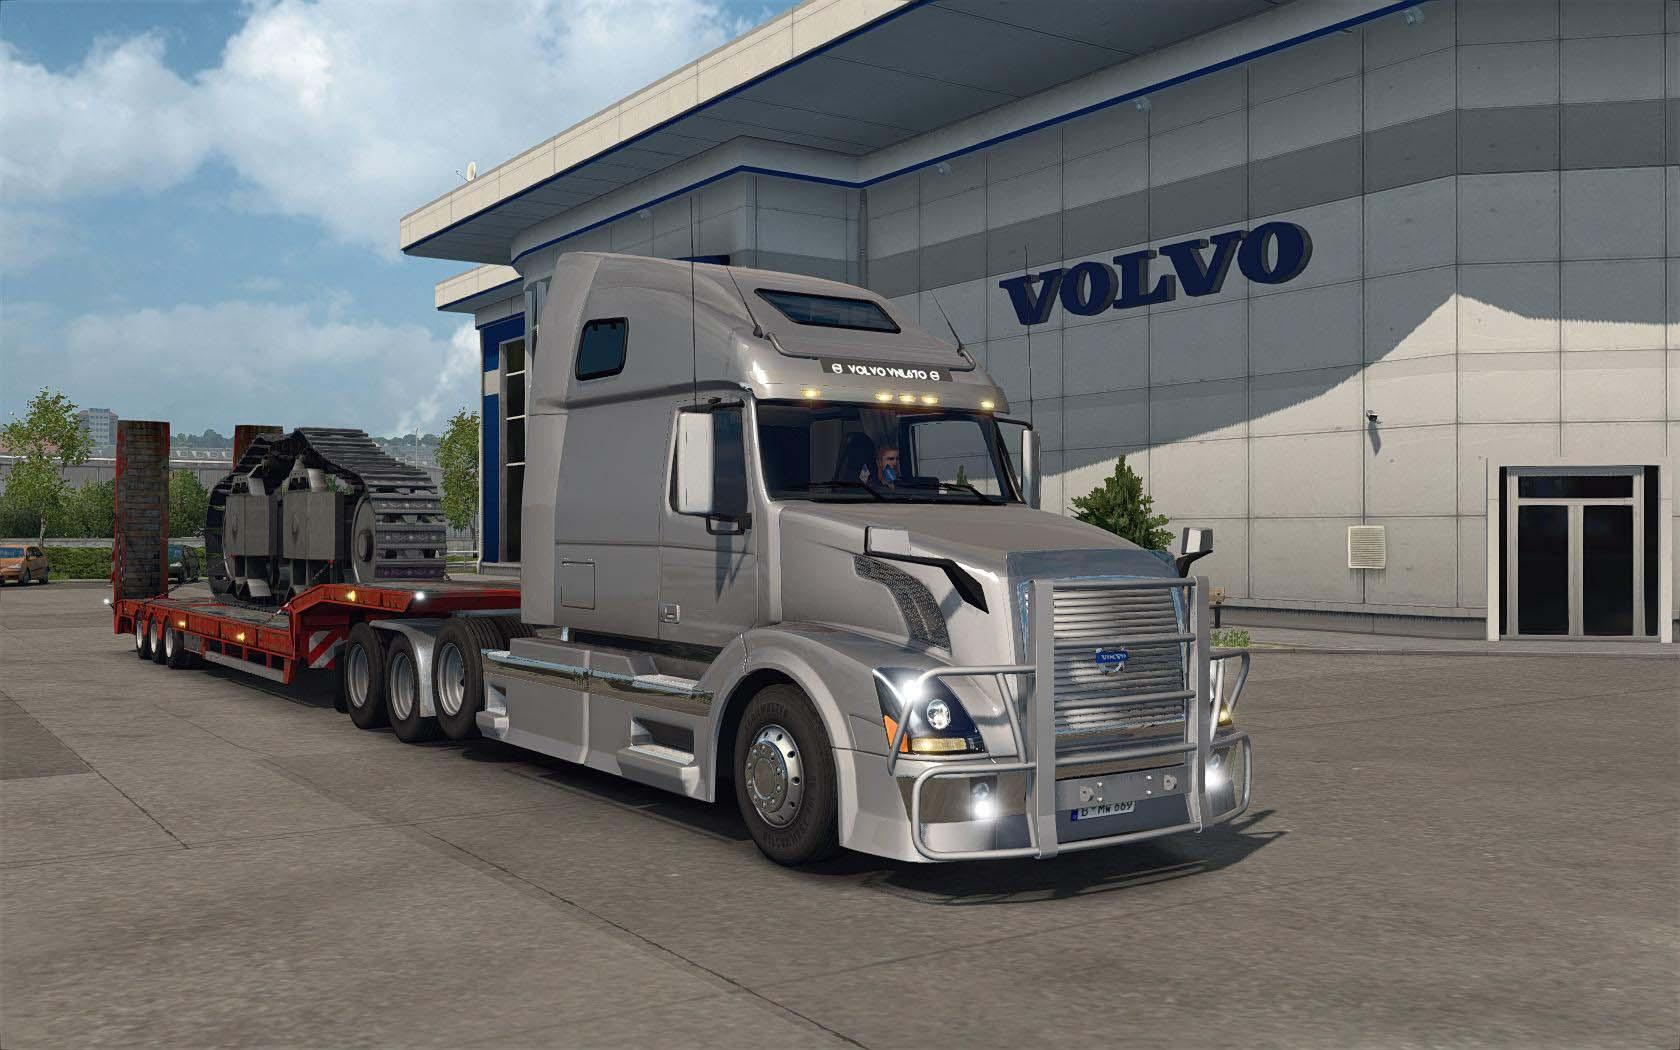 Volvo Vnl 670 Semi Truck Wiring Diagram Free Download 2000 Diagrams Group 2 V1 6 Mod Ets2 2003 Wire At